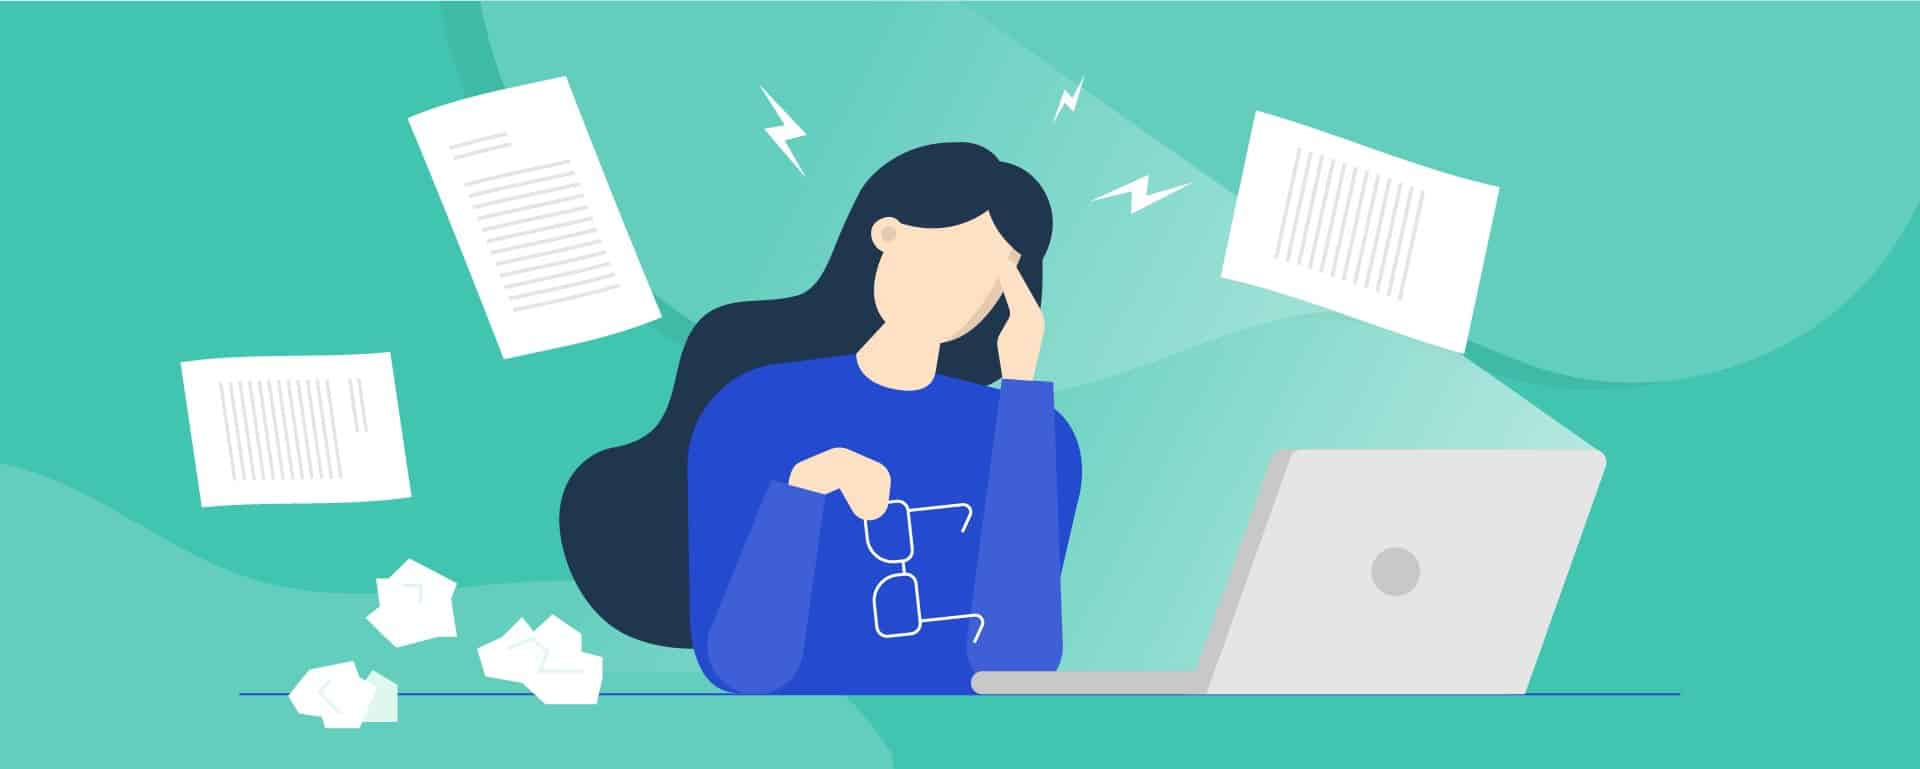 Suffering from Writing Anxiety? Here Are 7 Solutions You Can Try Today